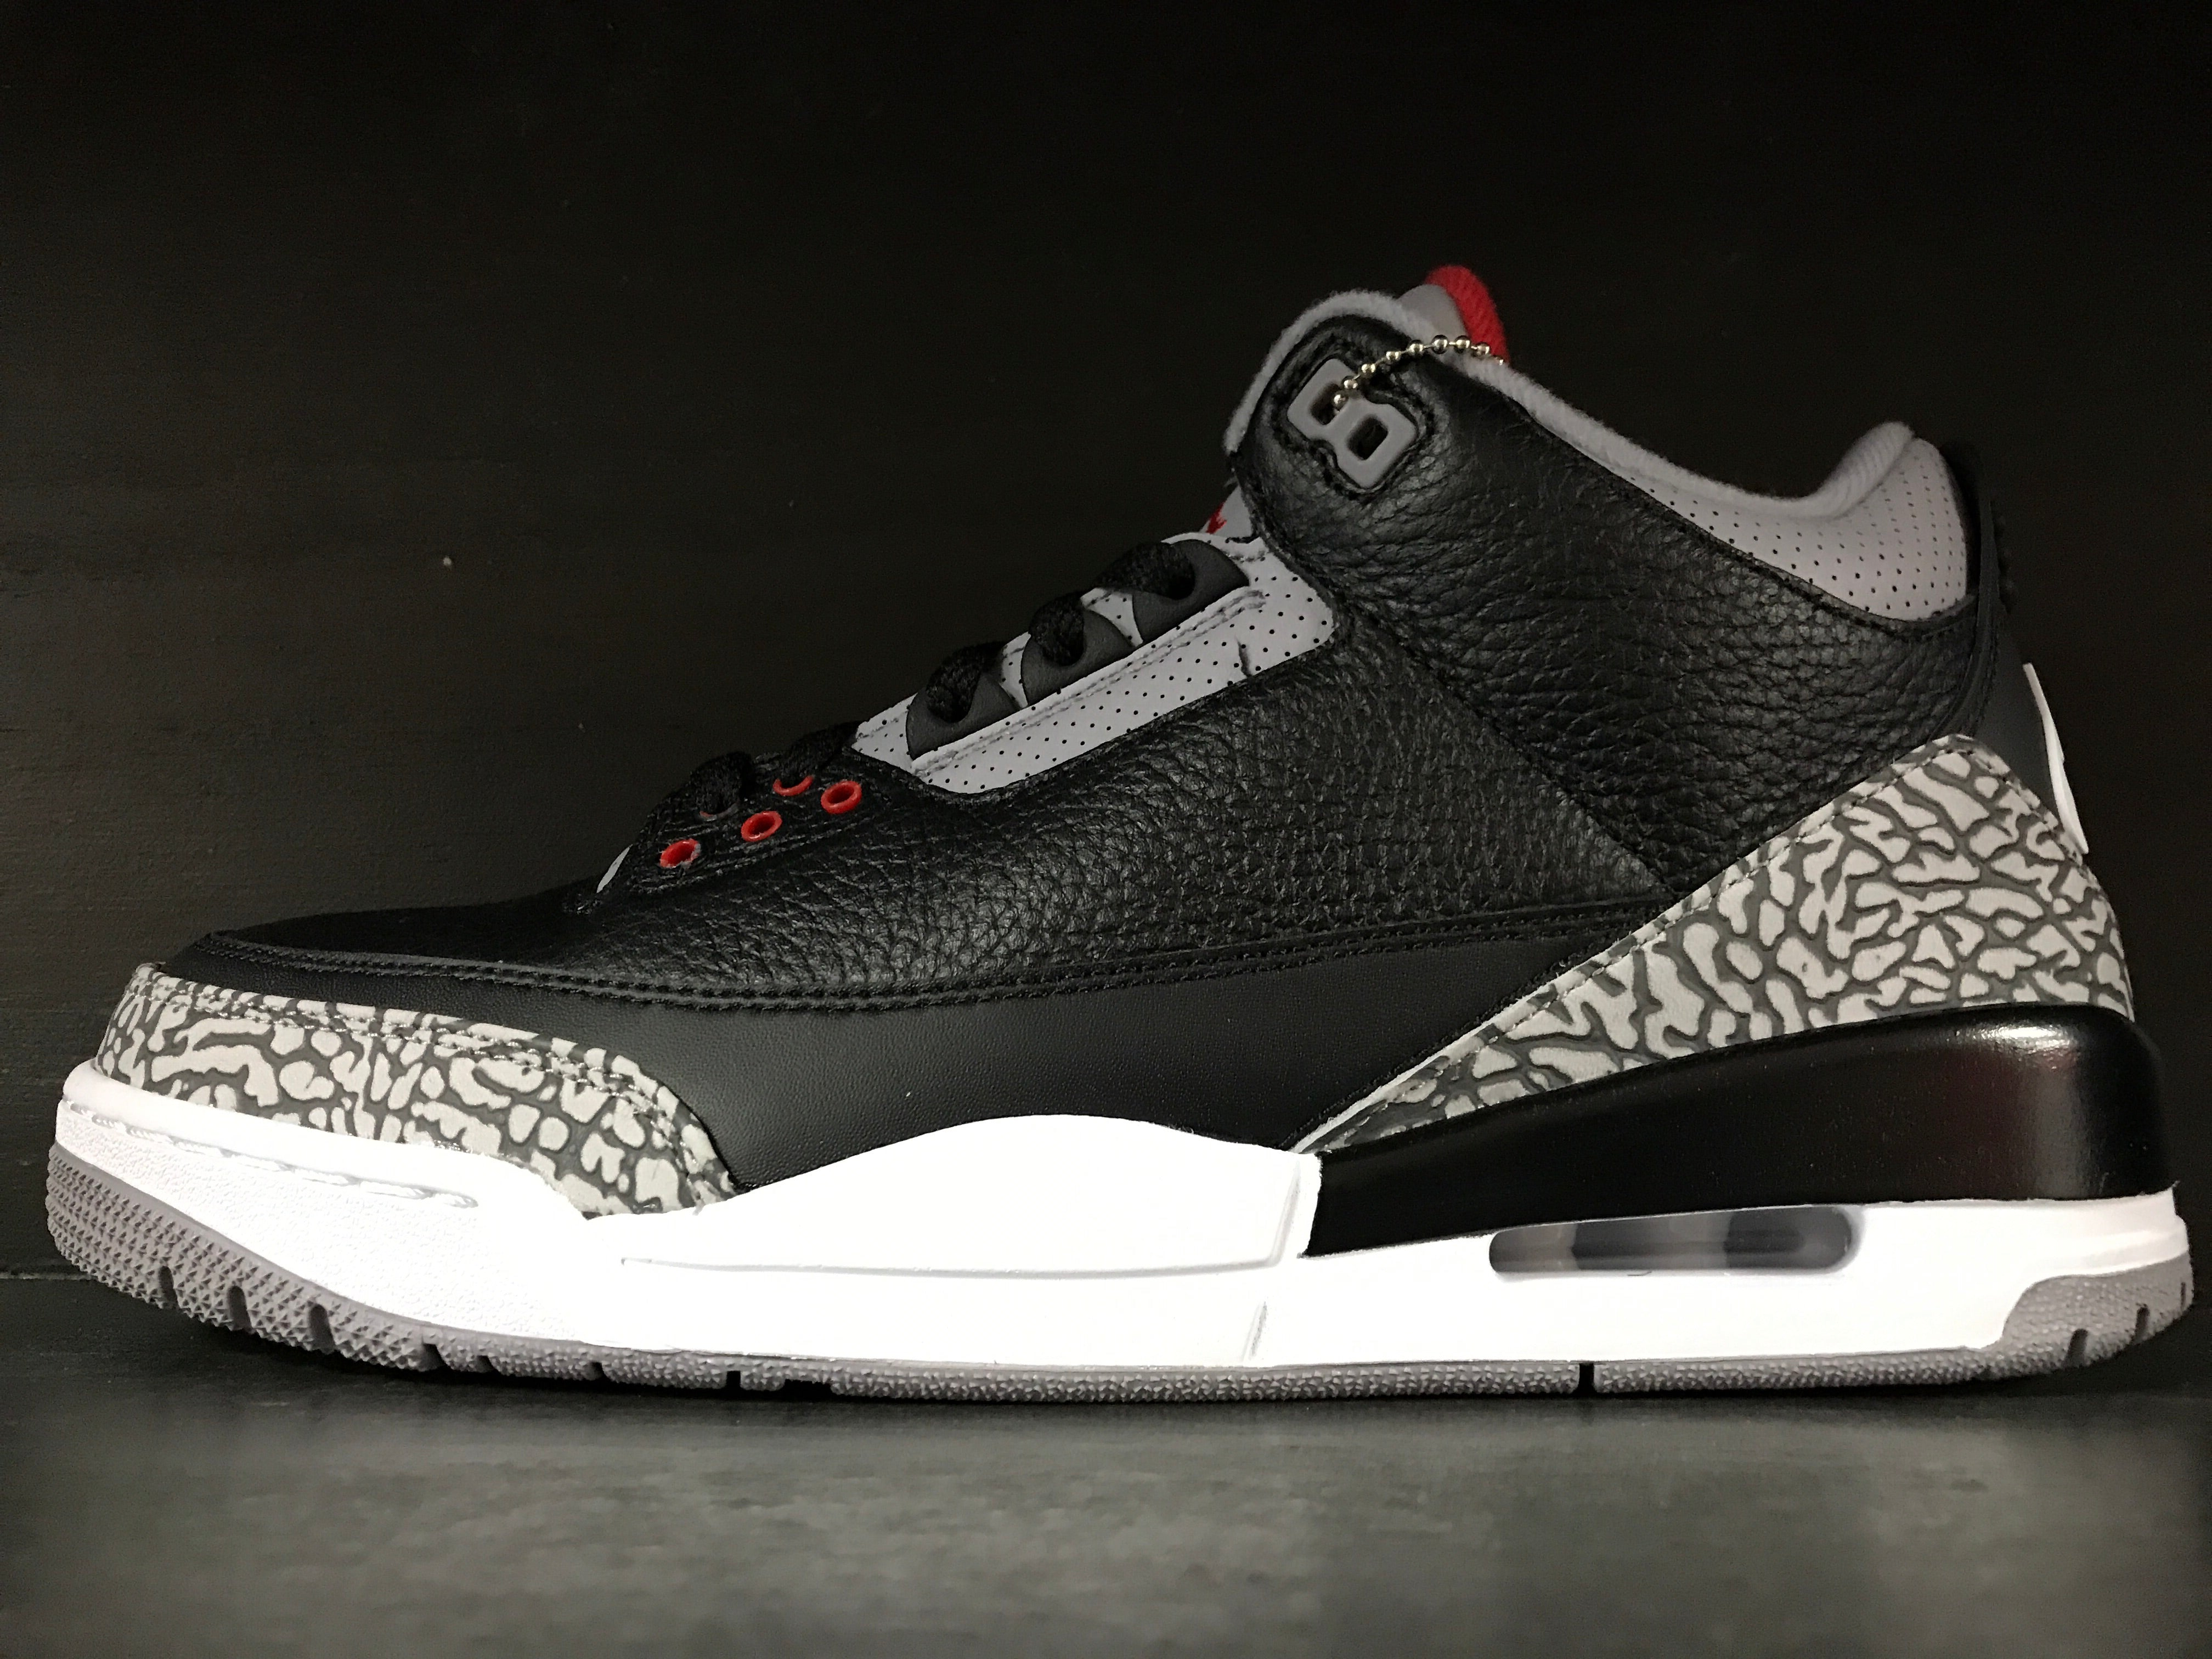 Air Jordan 3 Retro OG 'Cement'